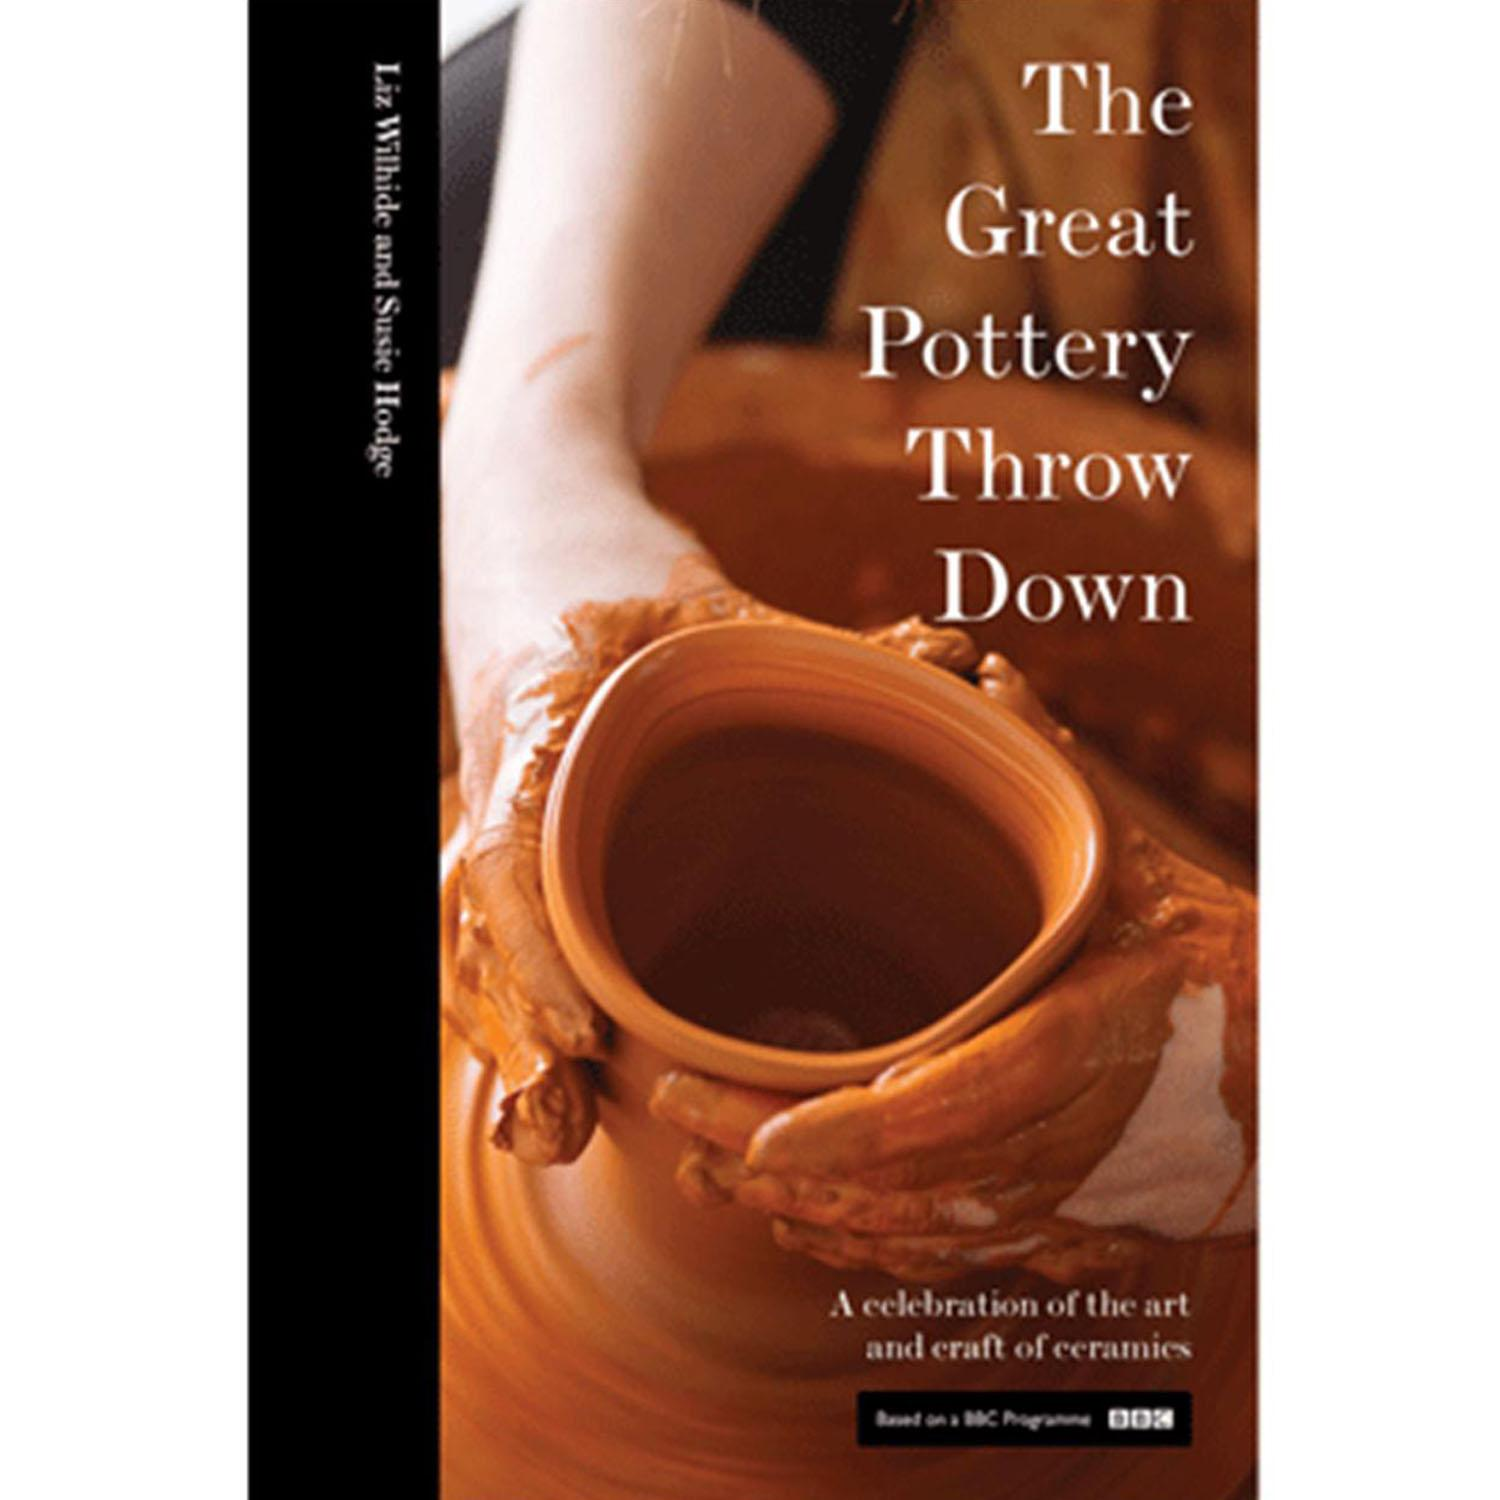 great pottery throw down book potclays studio. Black Bedroom Furniture Sets. Home Design Ideas